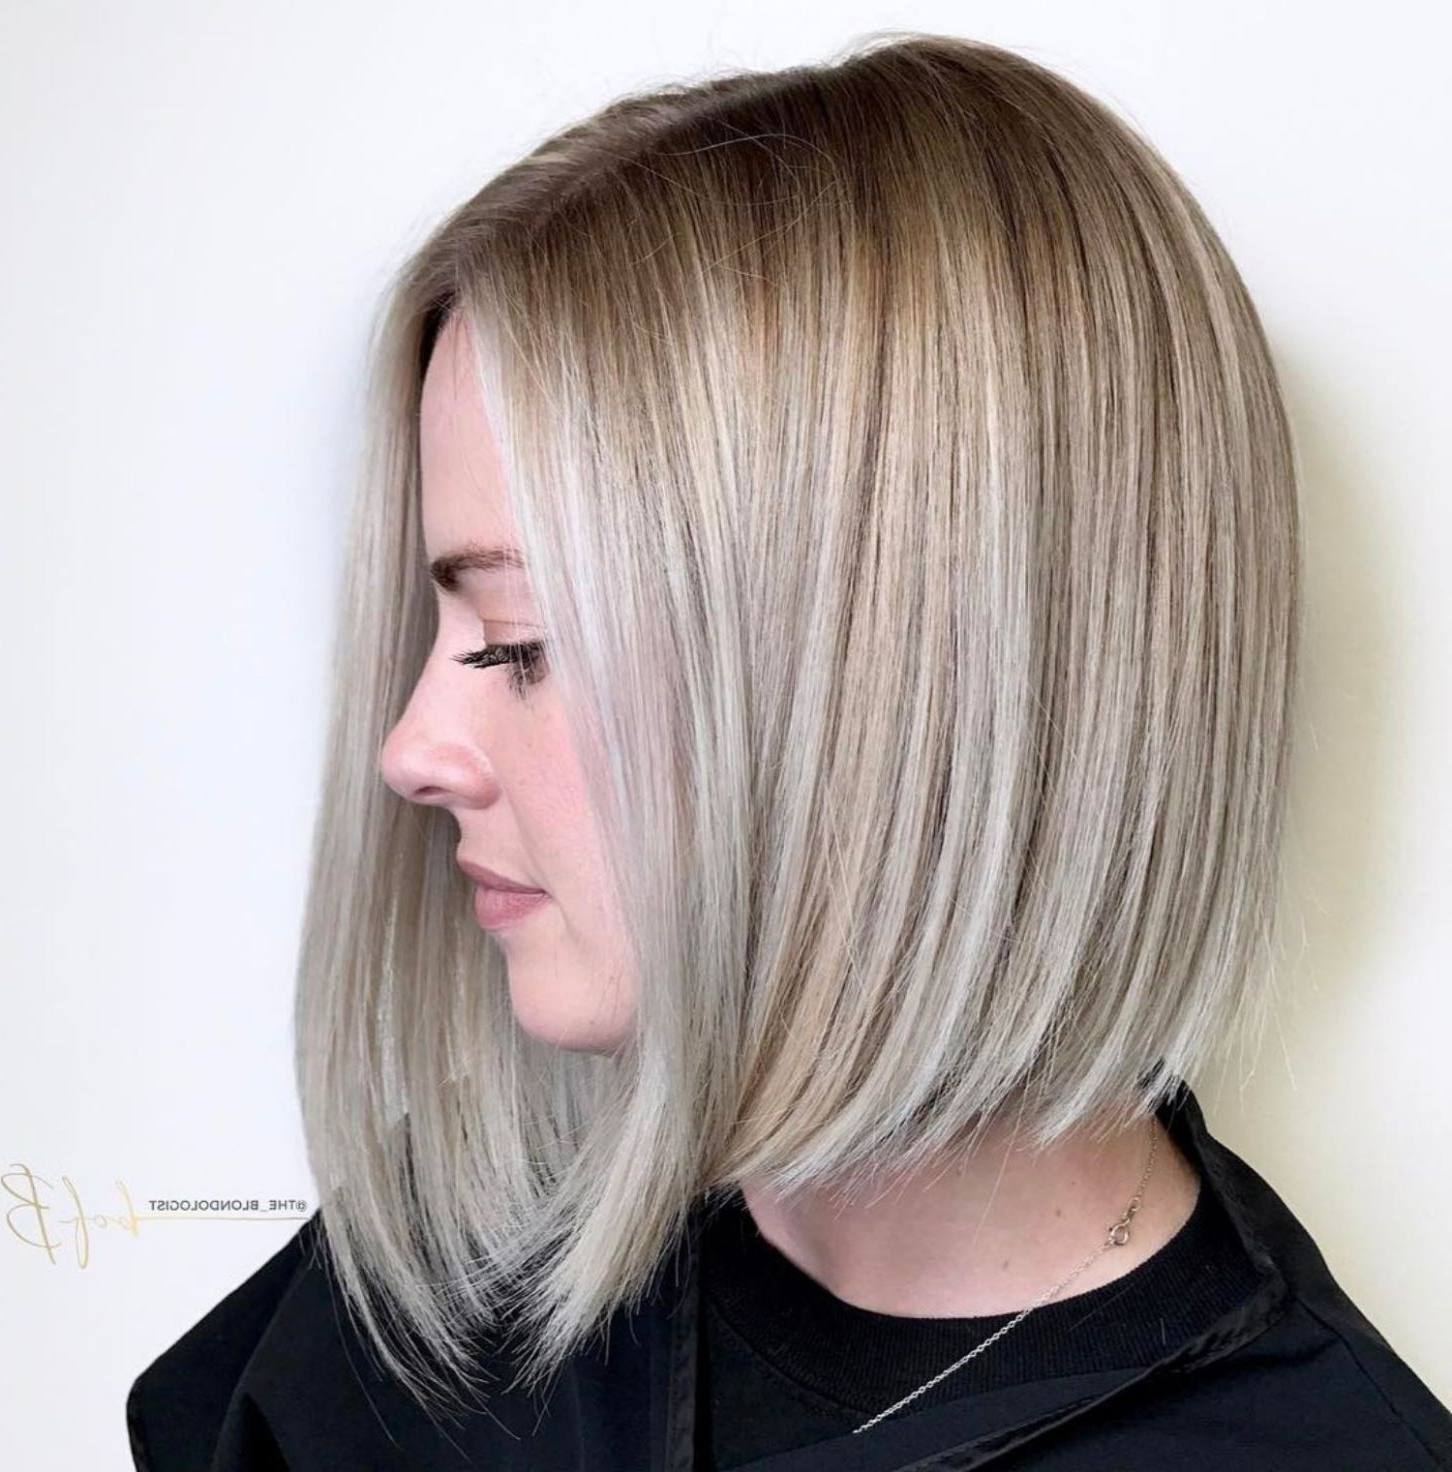 Trendy Razored Blonde Bob Haircuts With Bangs With 95 Amazing Winning Looks With Bob Haircuts For Fine Hair (View 20 of 20)